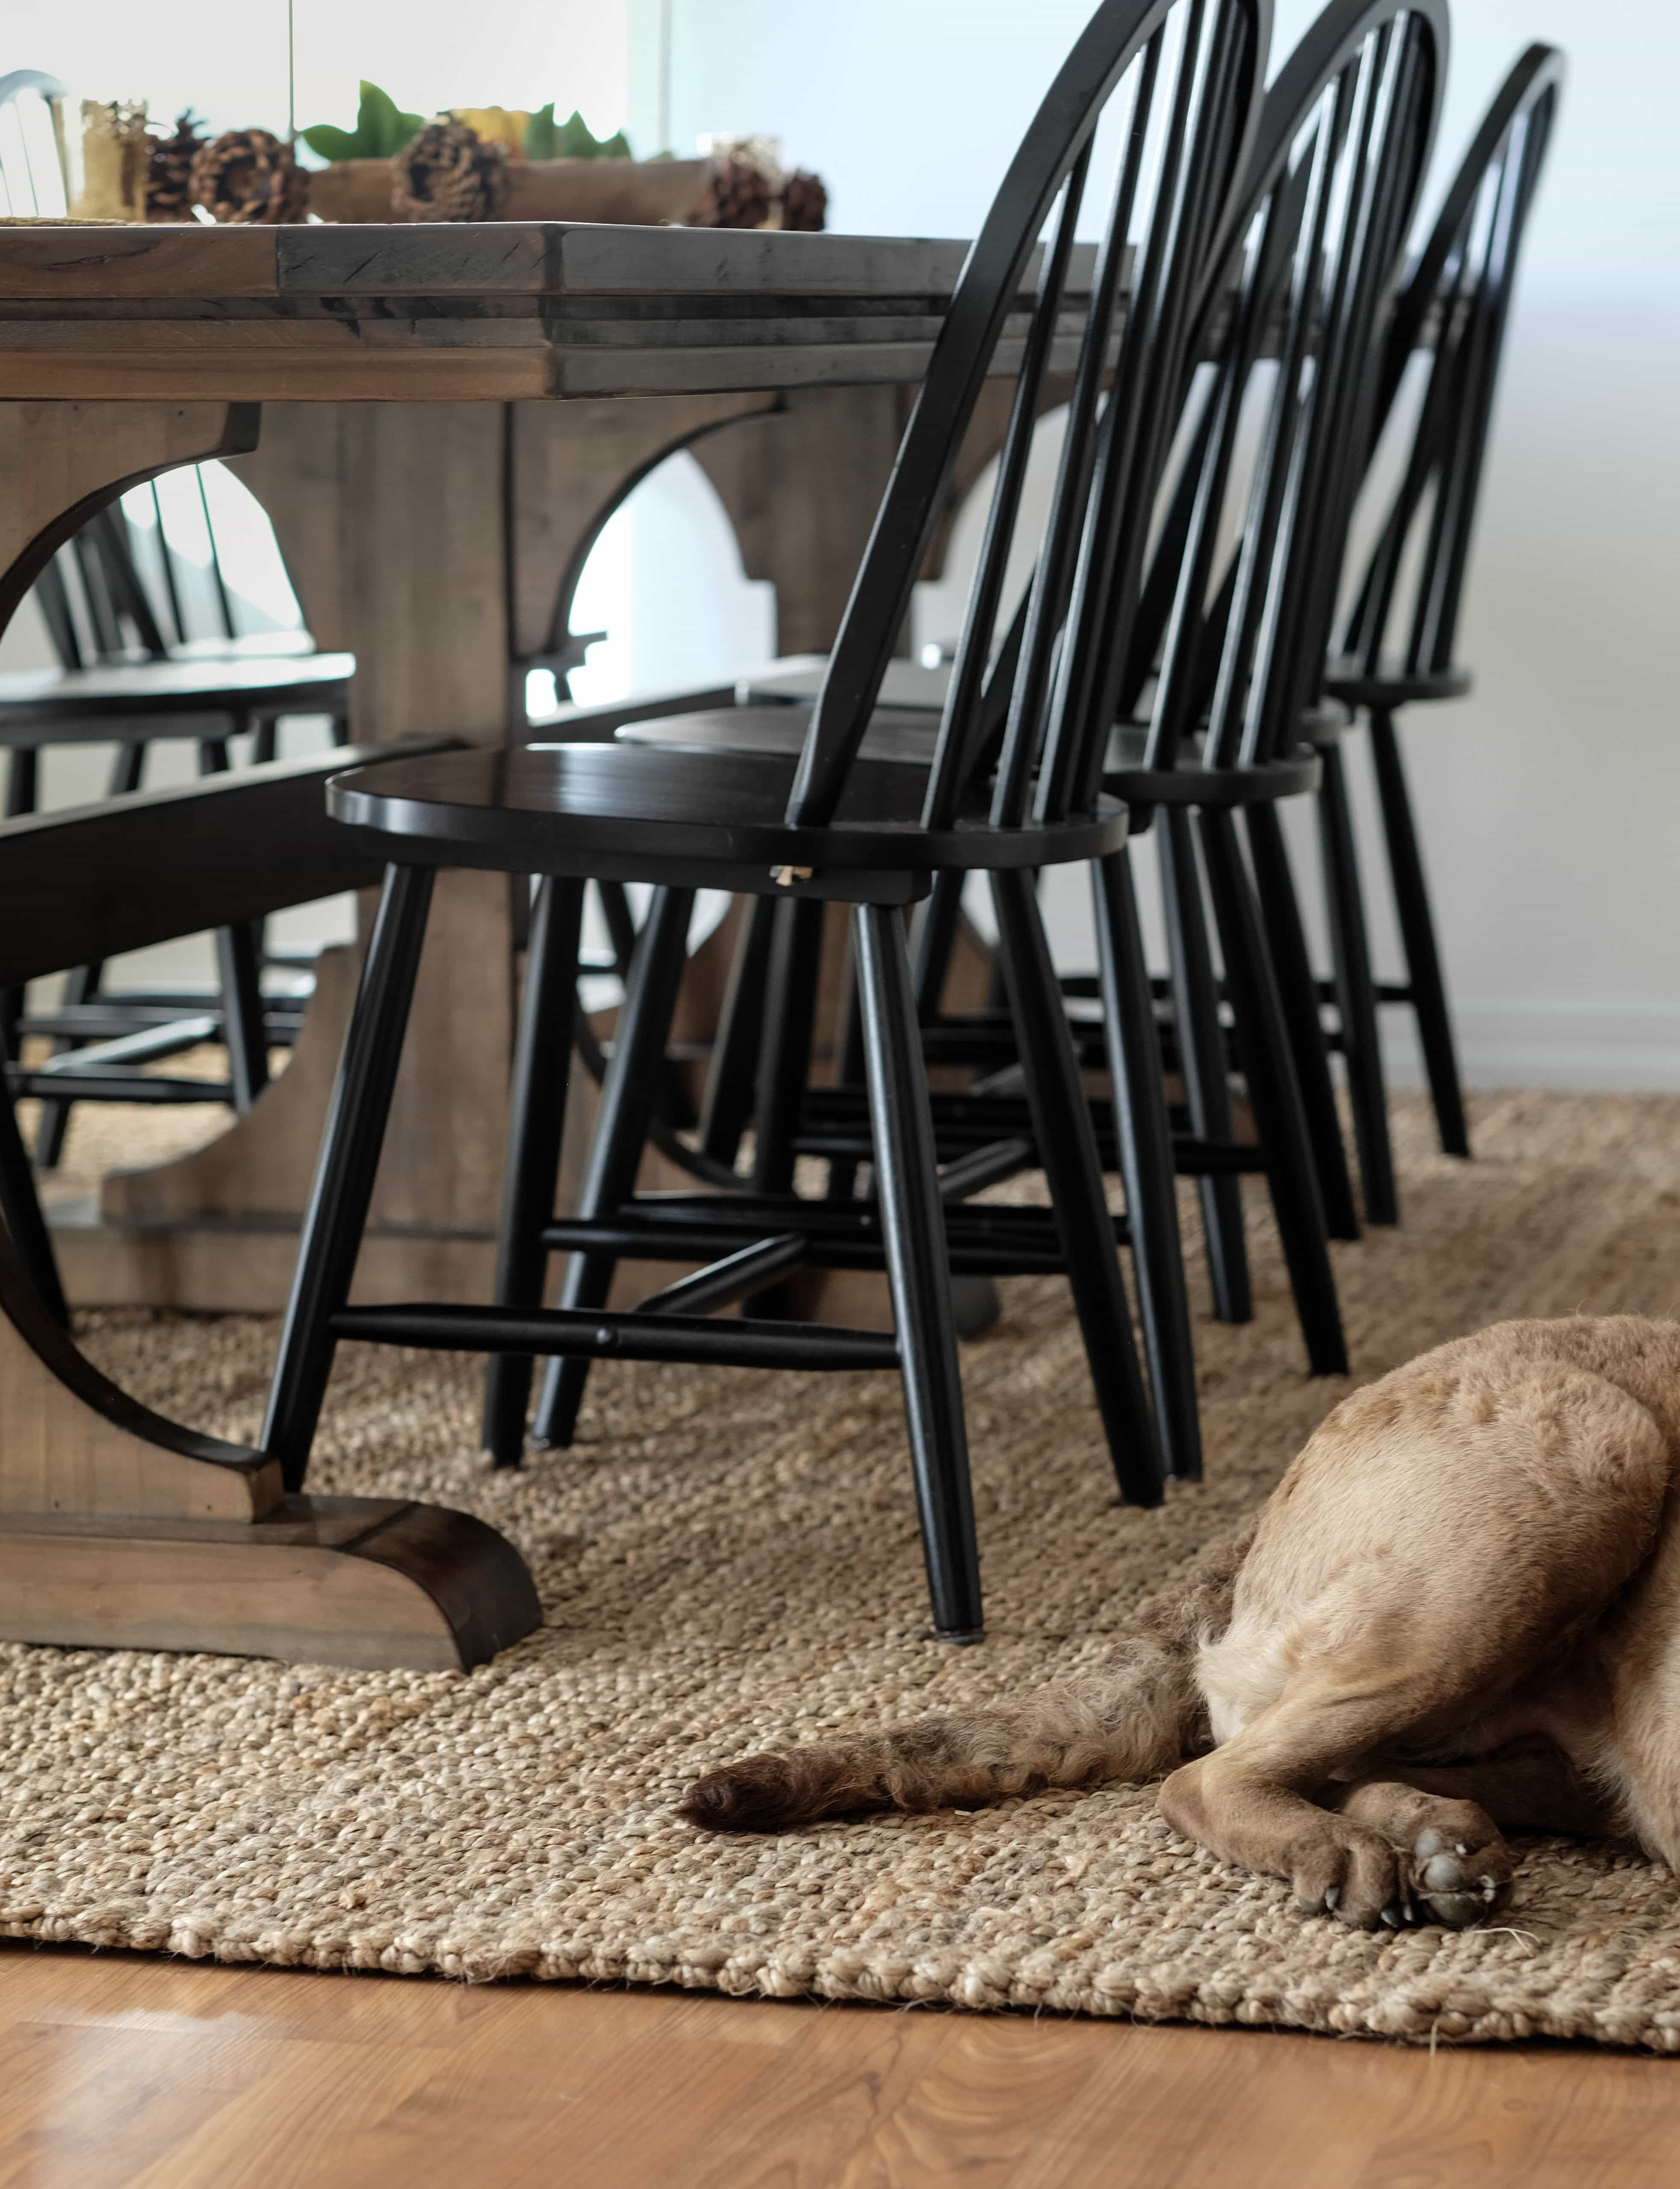 Jute Rug Review. Jute rug in dining room with table and chairs on it